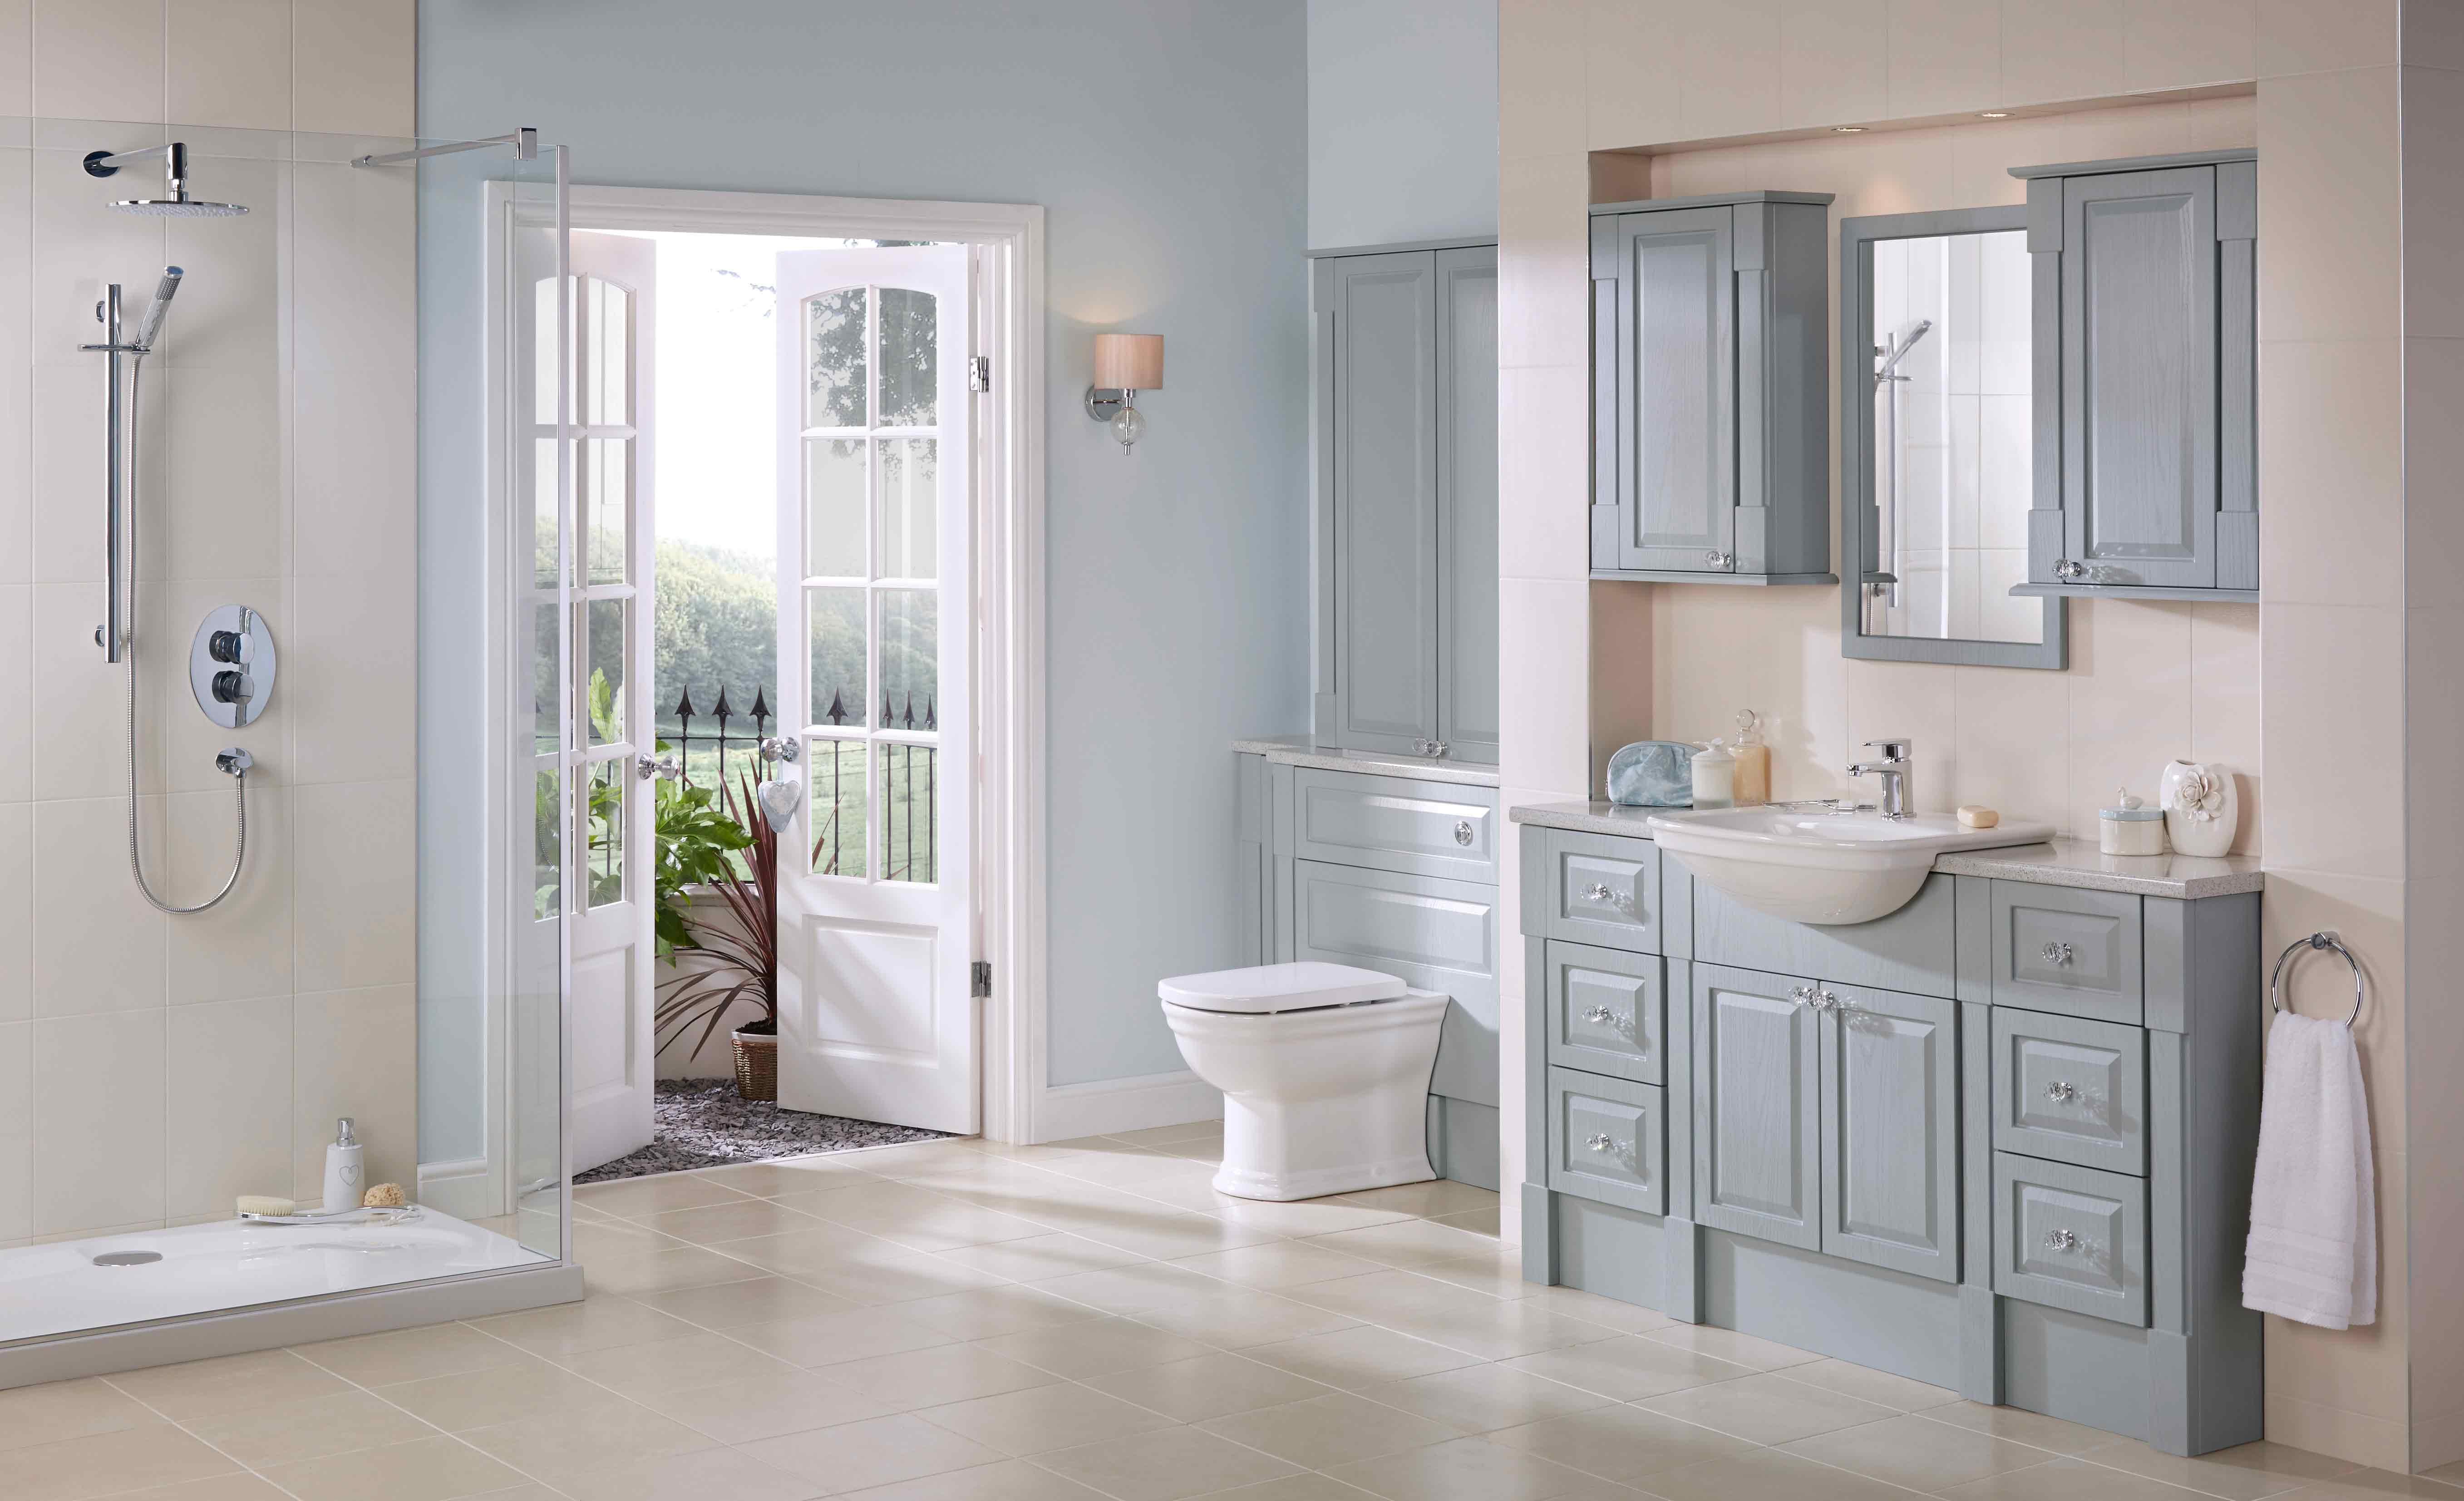 Fitted bathroom prices in bickershaw for Small fitted bathrooms